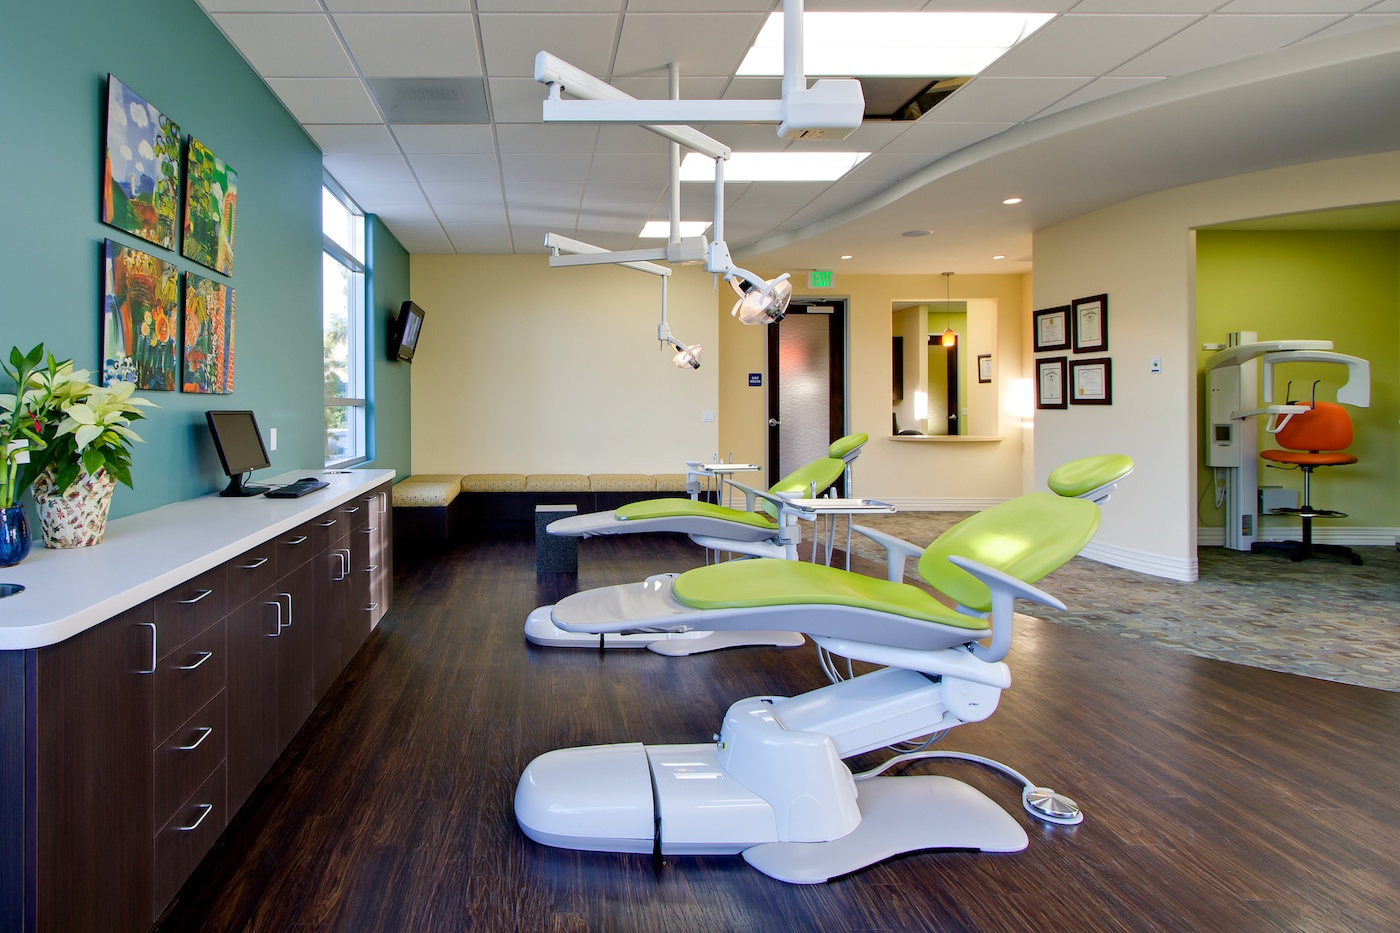 Efficient office layout of dental office interior design for Interior office design ideas photos layout